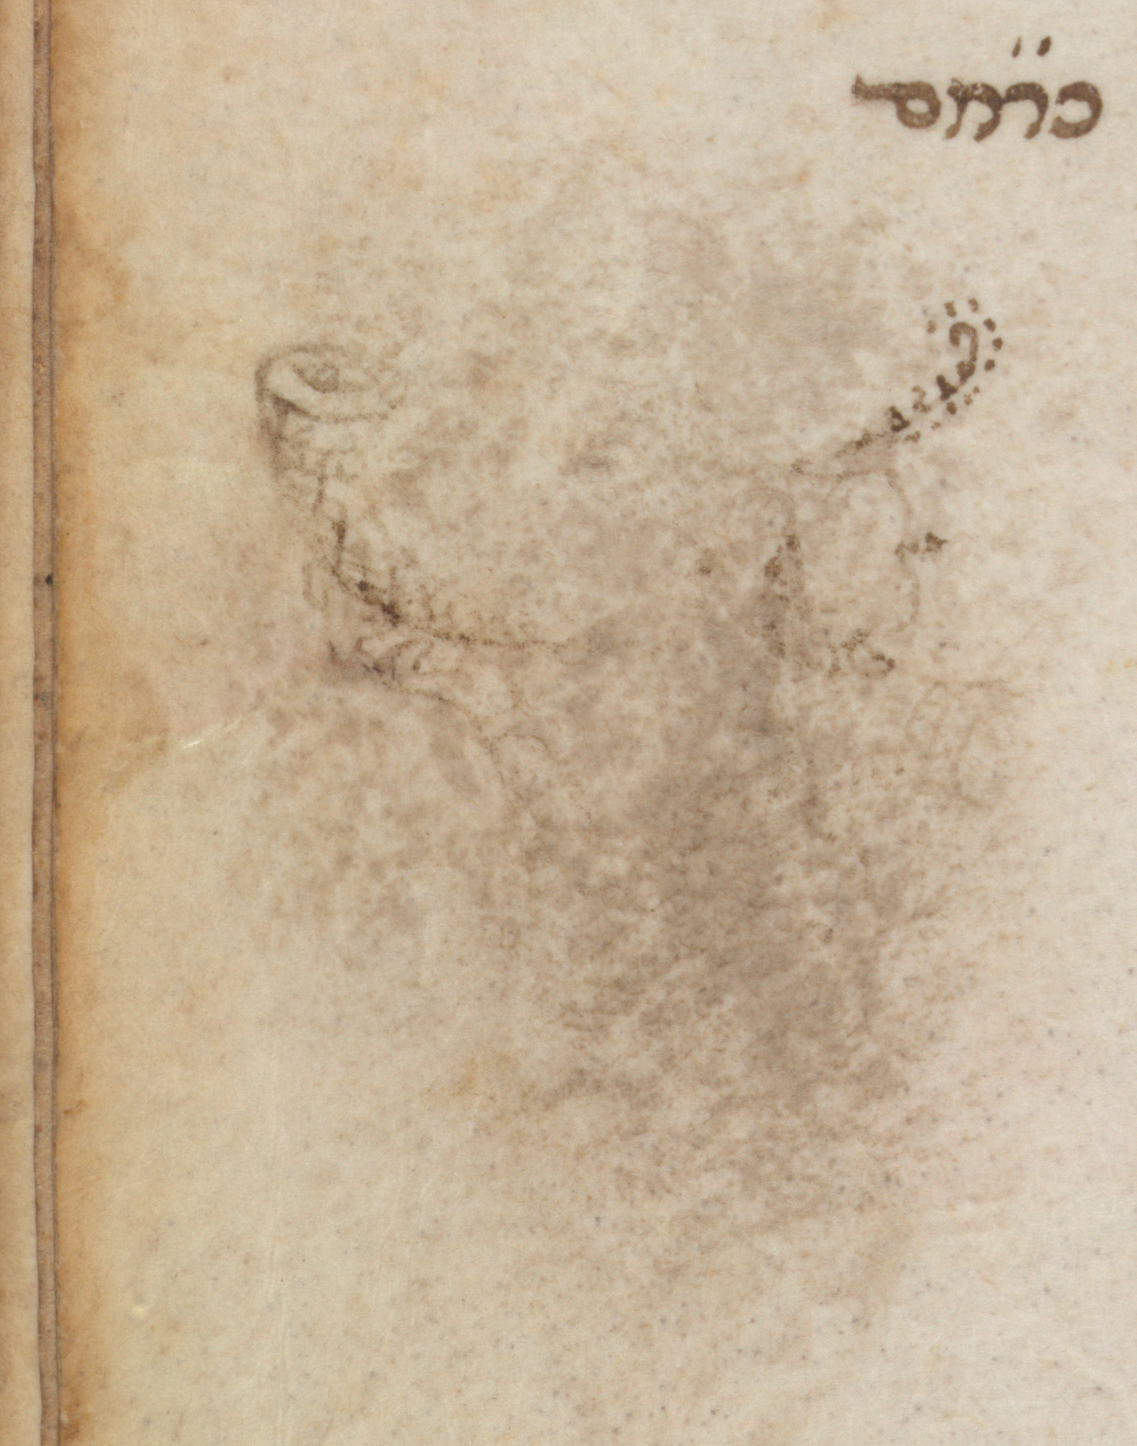 Colour image showing the erased decoration in the margin, Add MS 26957, Hebrew Manuscripts Digitisation Project, British Library